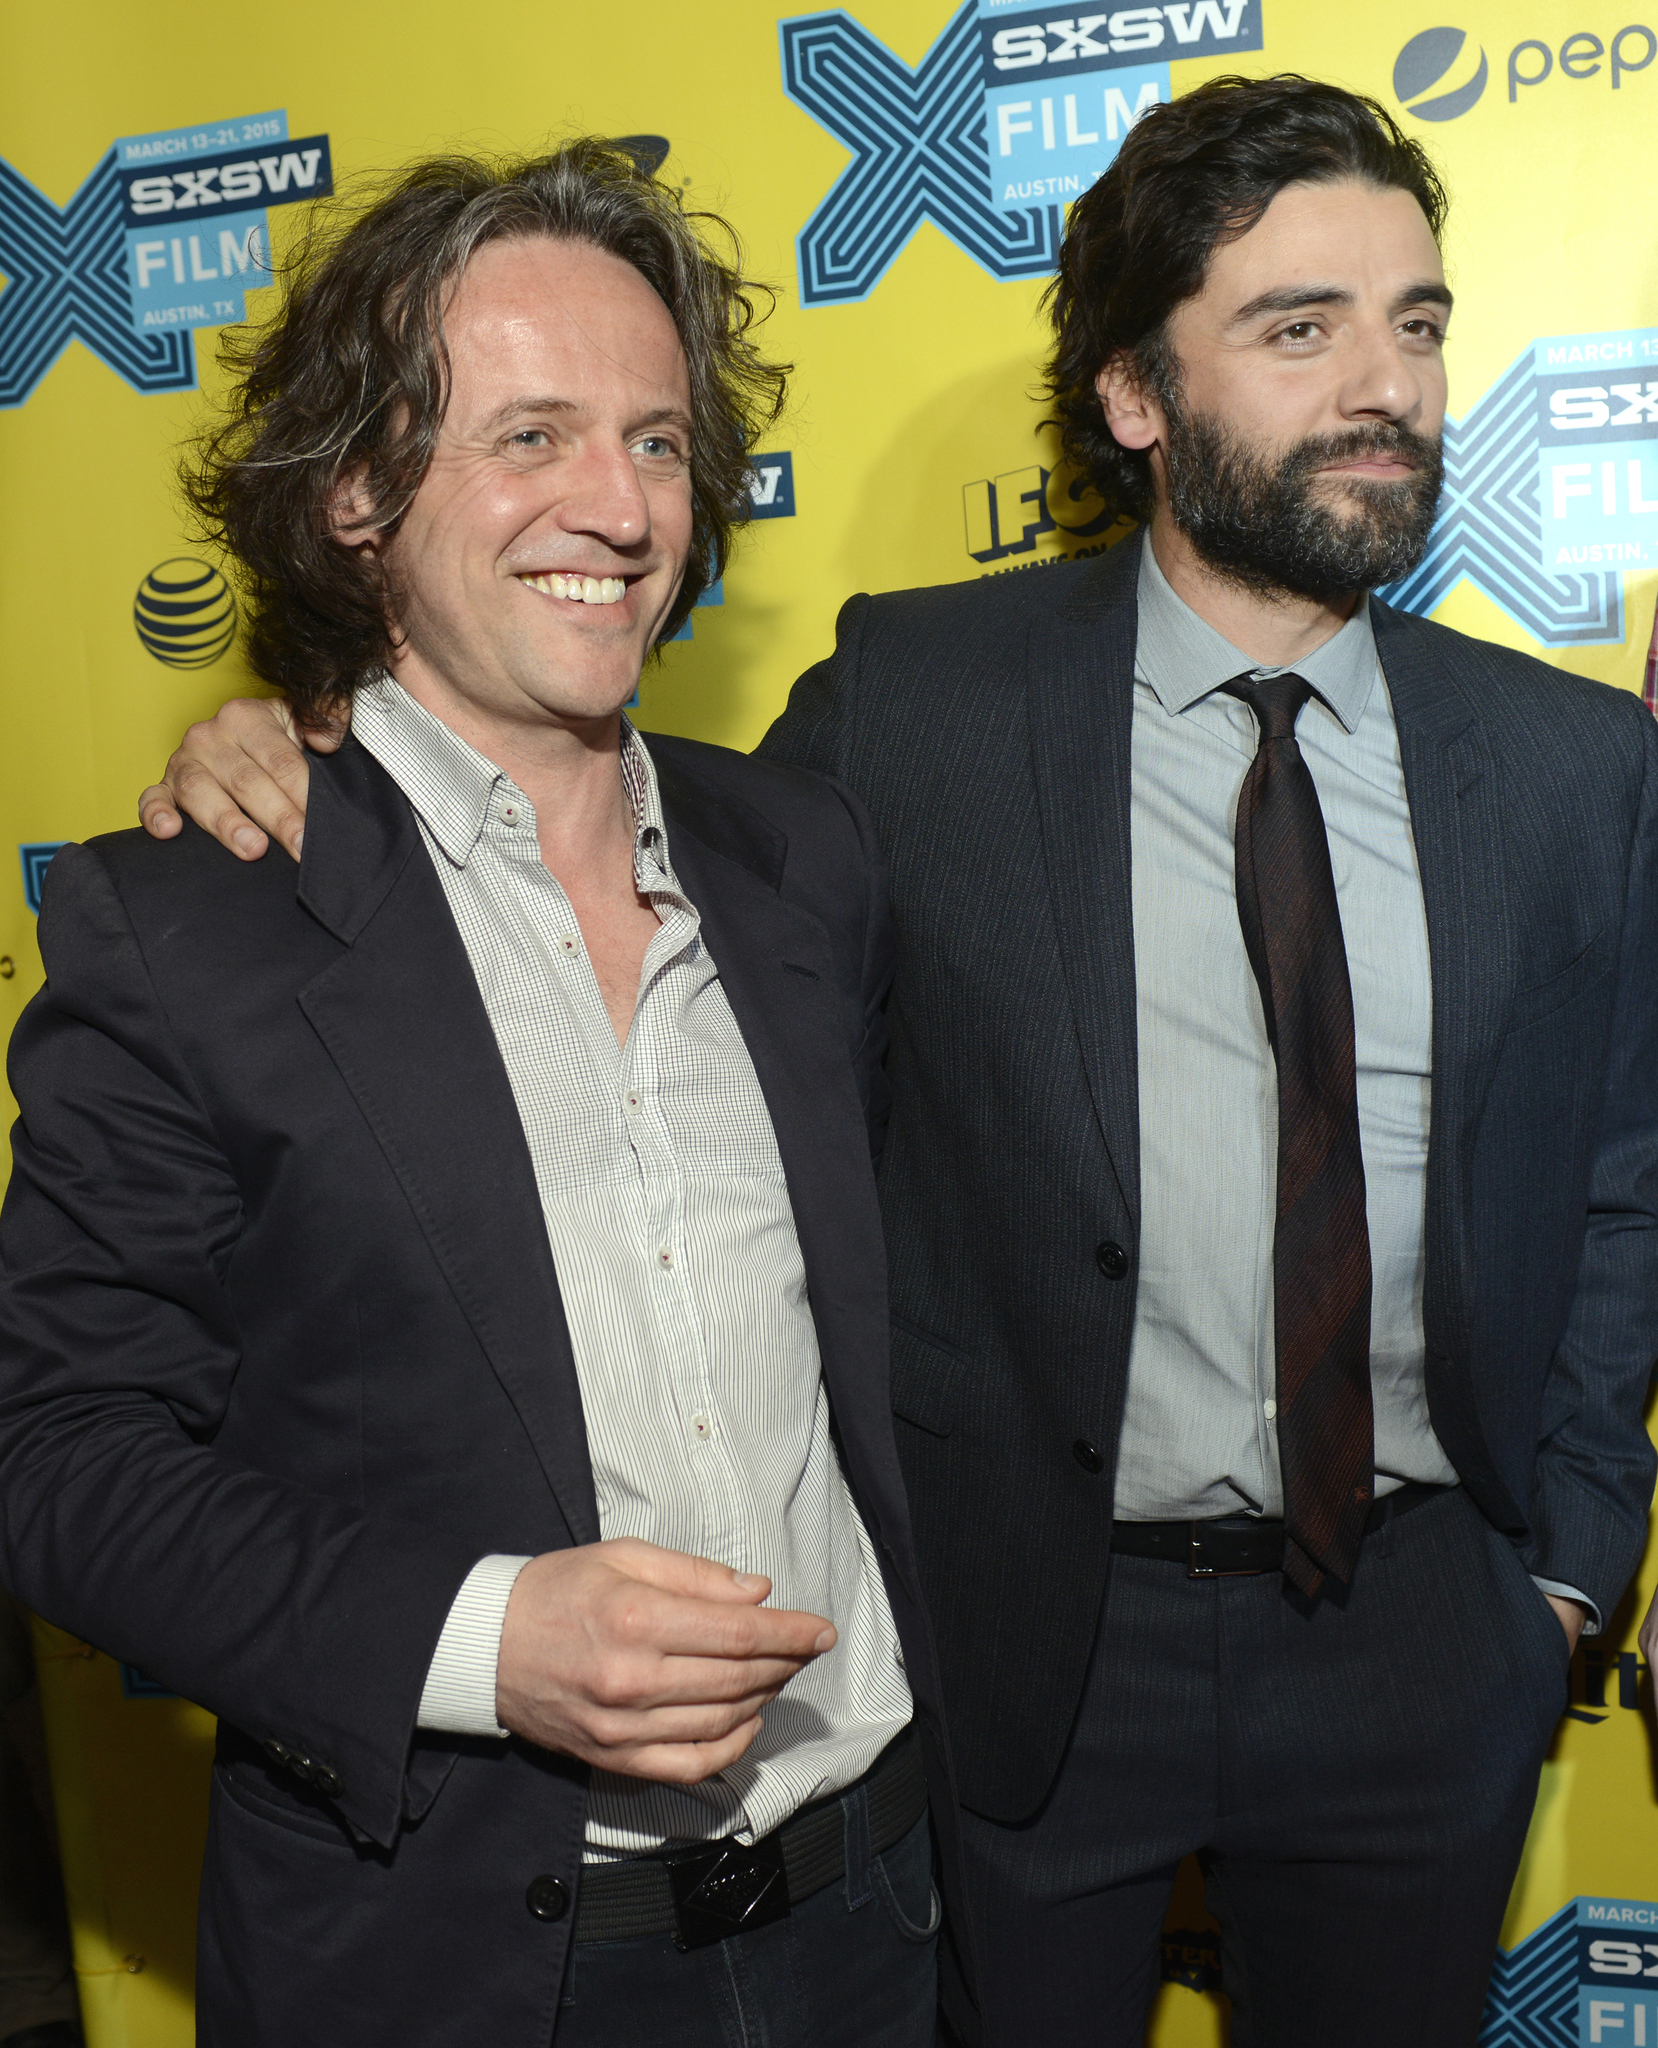 Rob Hardy and Oscar Isaac at an event for Ex Machina (2014)